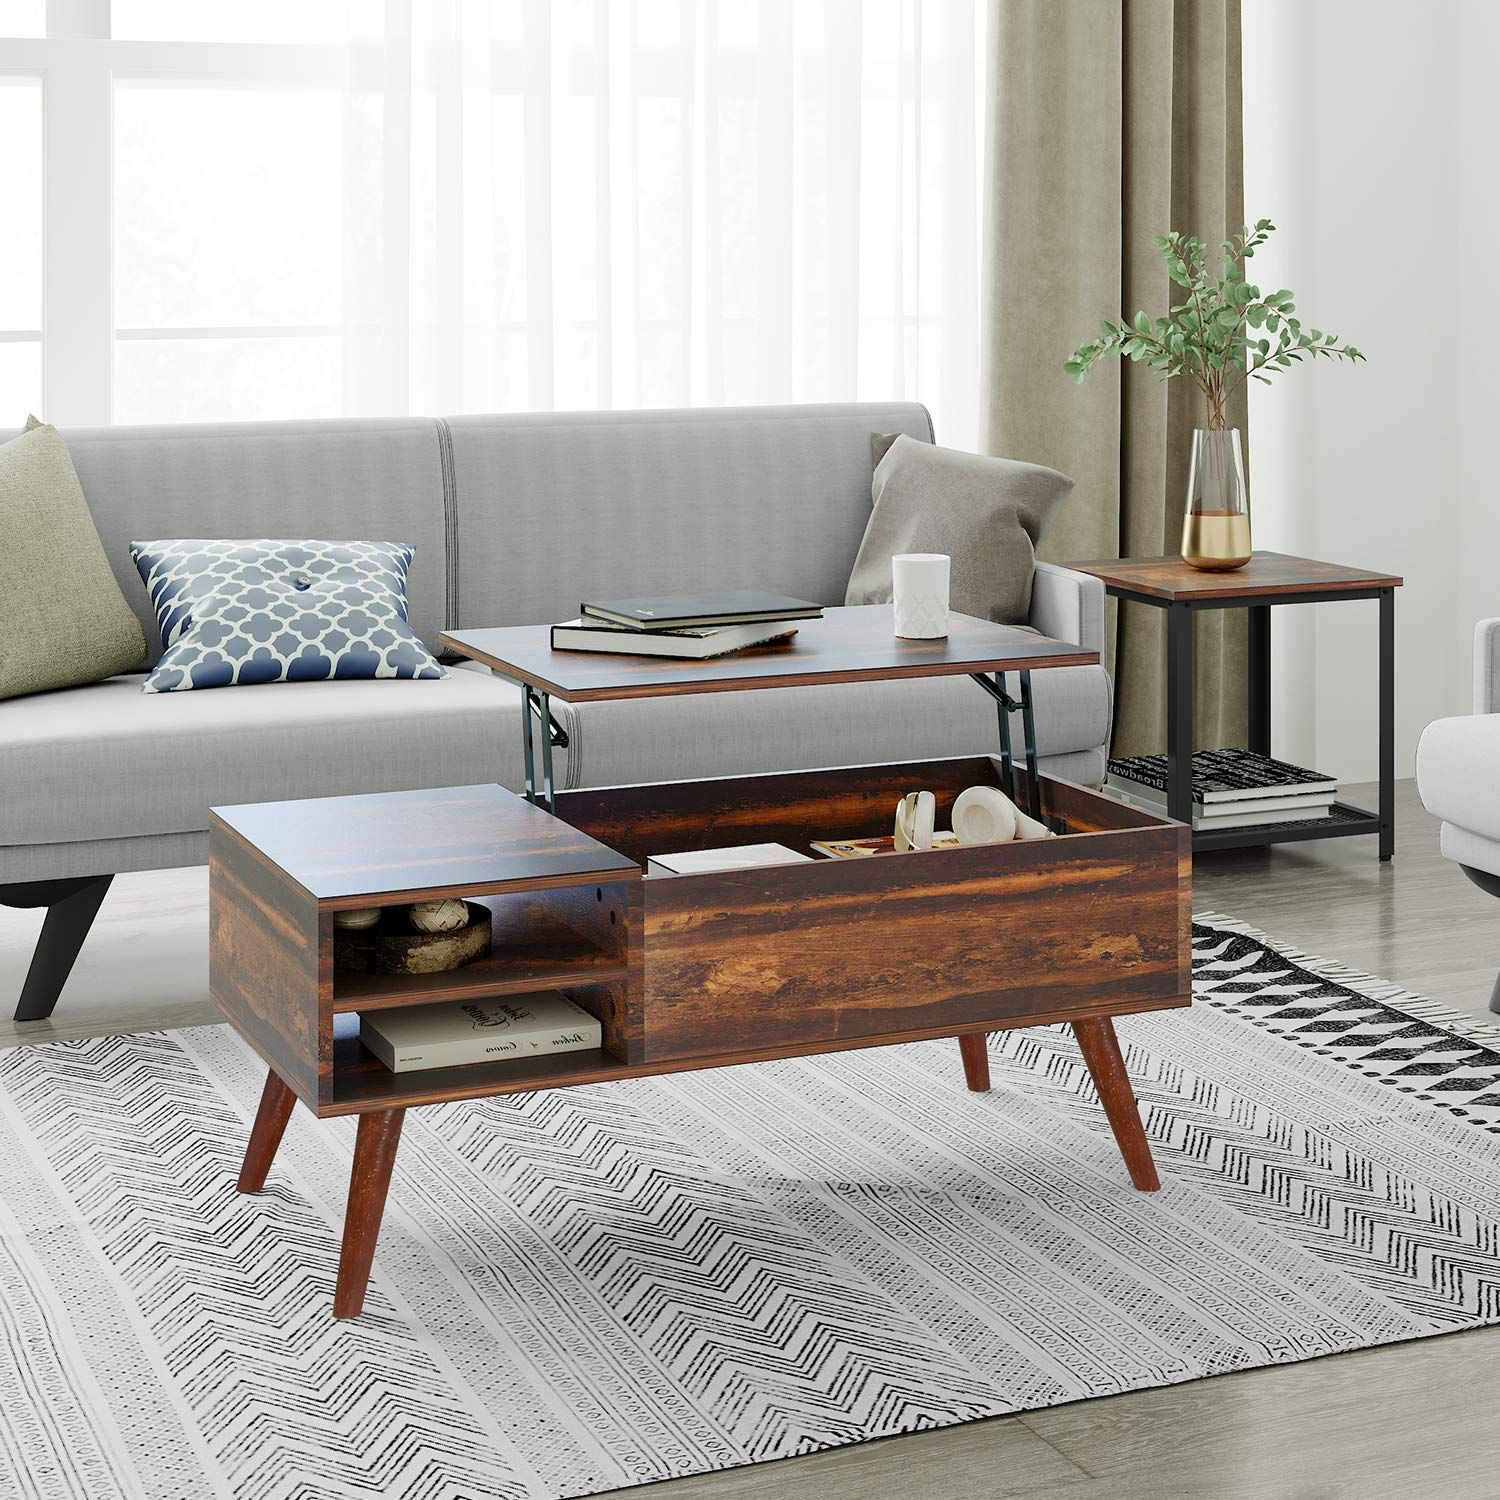 Amazon Com Wlive Wood Lift Top Coffee Table With Hidden Compartment And Storage Shelf Li Wood Lift Top Coffee Table Coffee Table Wood Solid Wood Coffee Table [ 1500 x 1500 Pixel ]